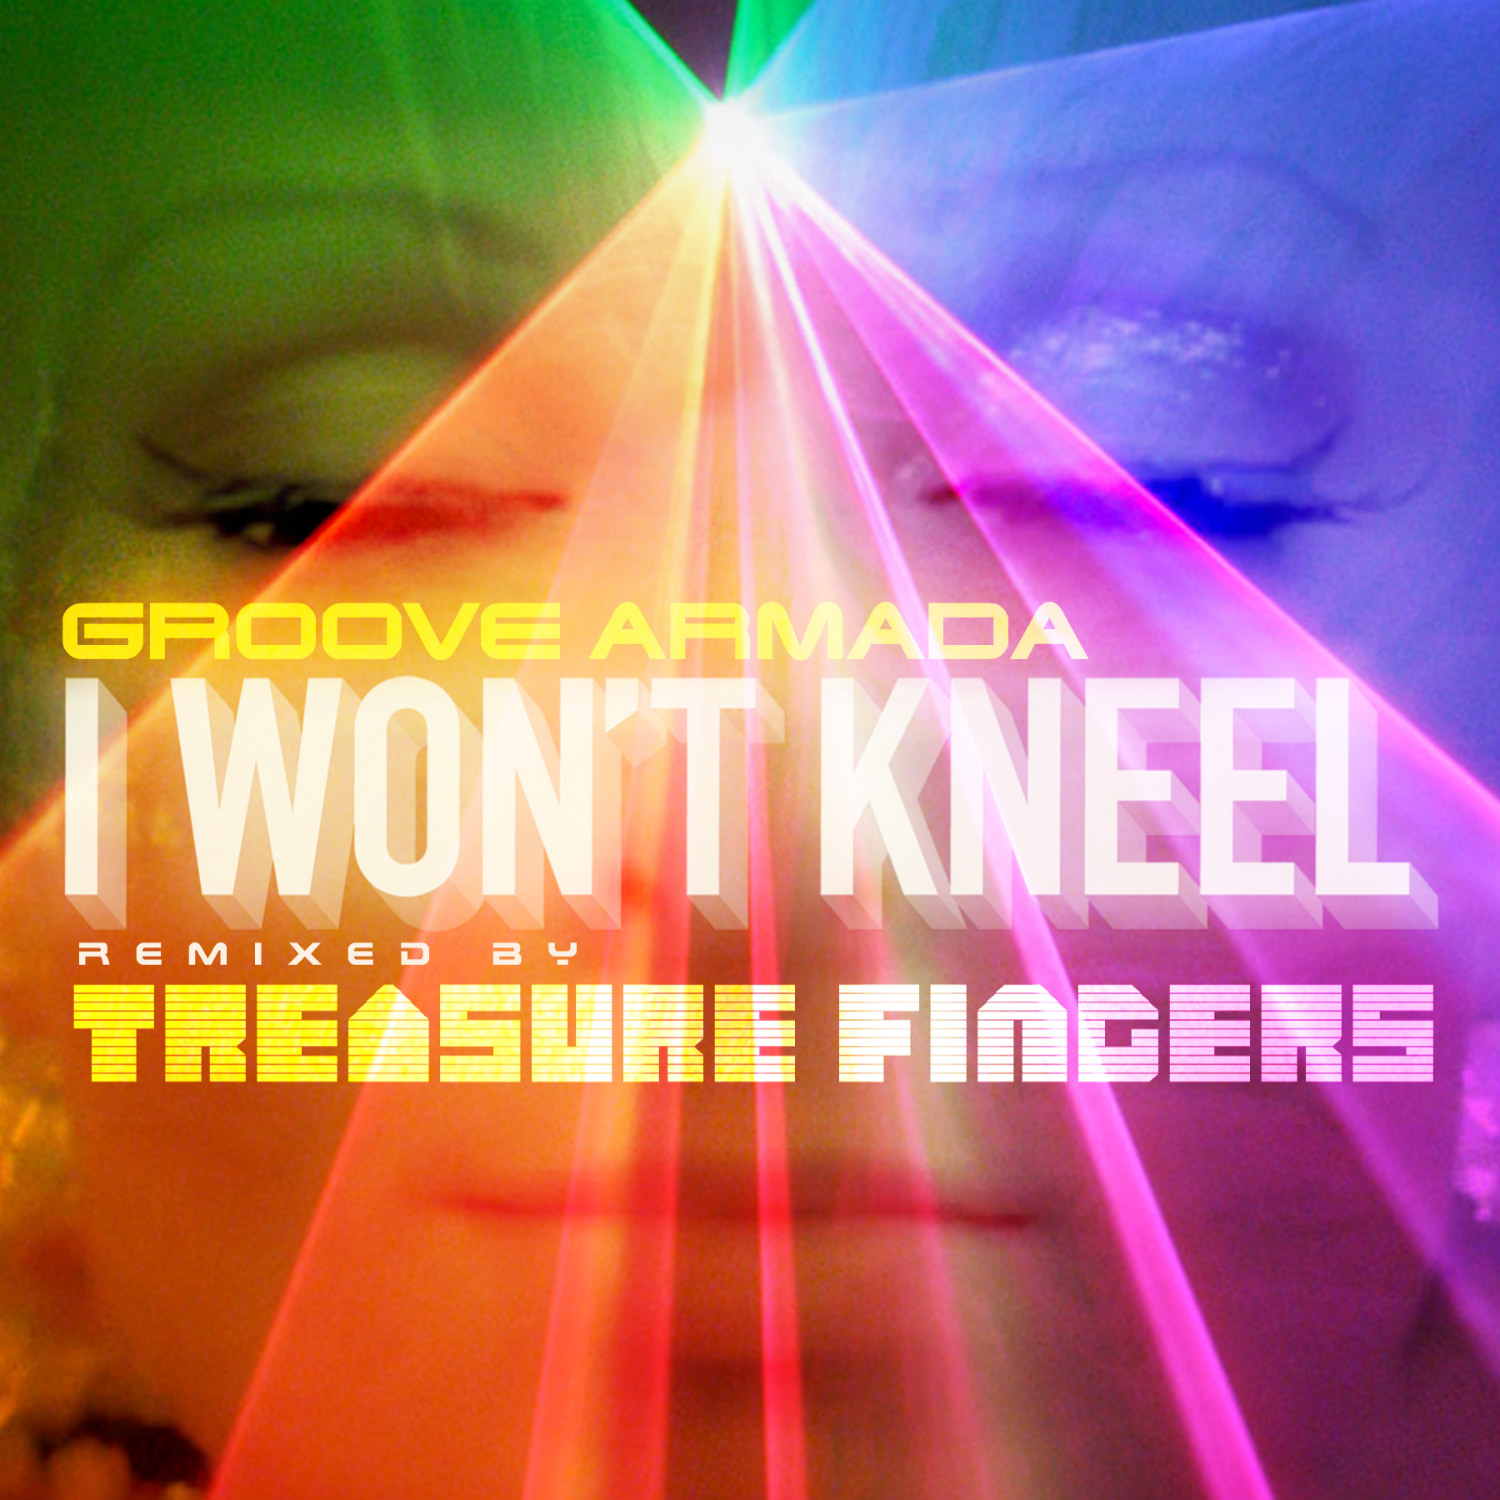 Groove Armada - I Won't Kneel (Treasure Fingers Remix)